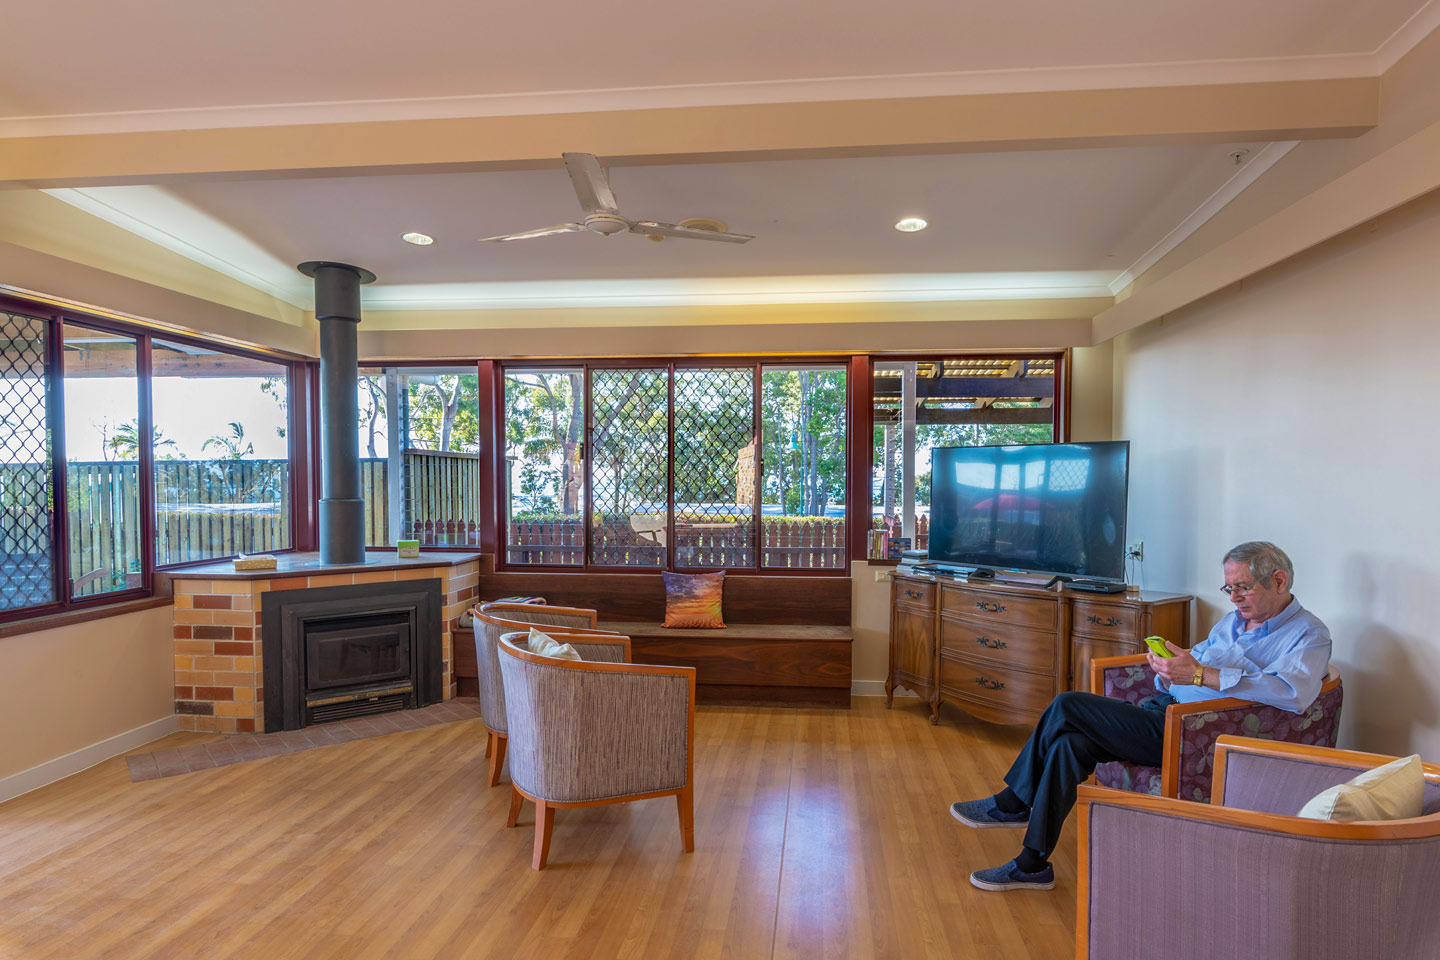 Anglicare Edwin Marsden Tooth Residential Care, Manly QLD 4179 - Anglicare Edwin Marsden Tooth Residential Care